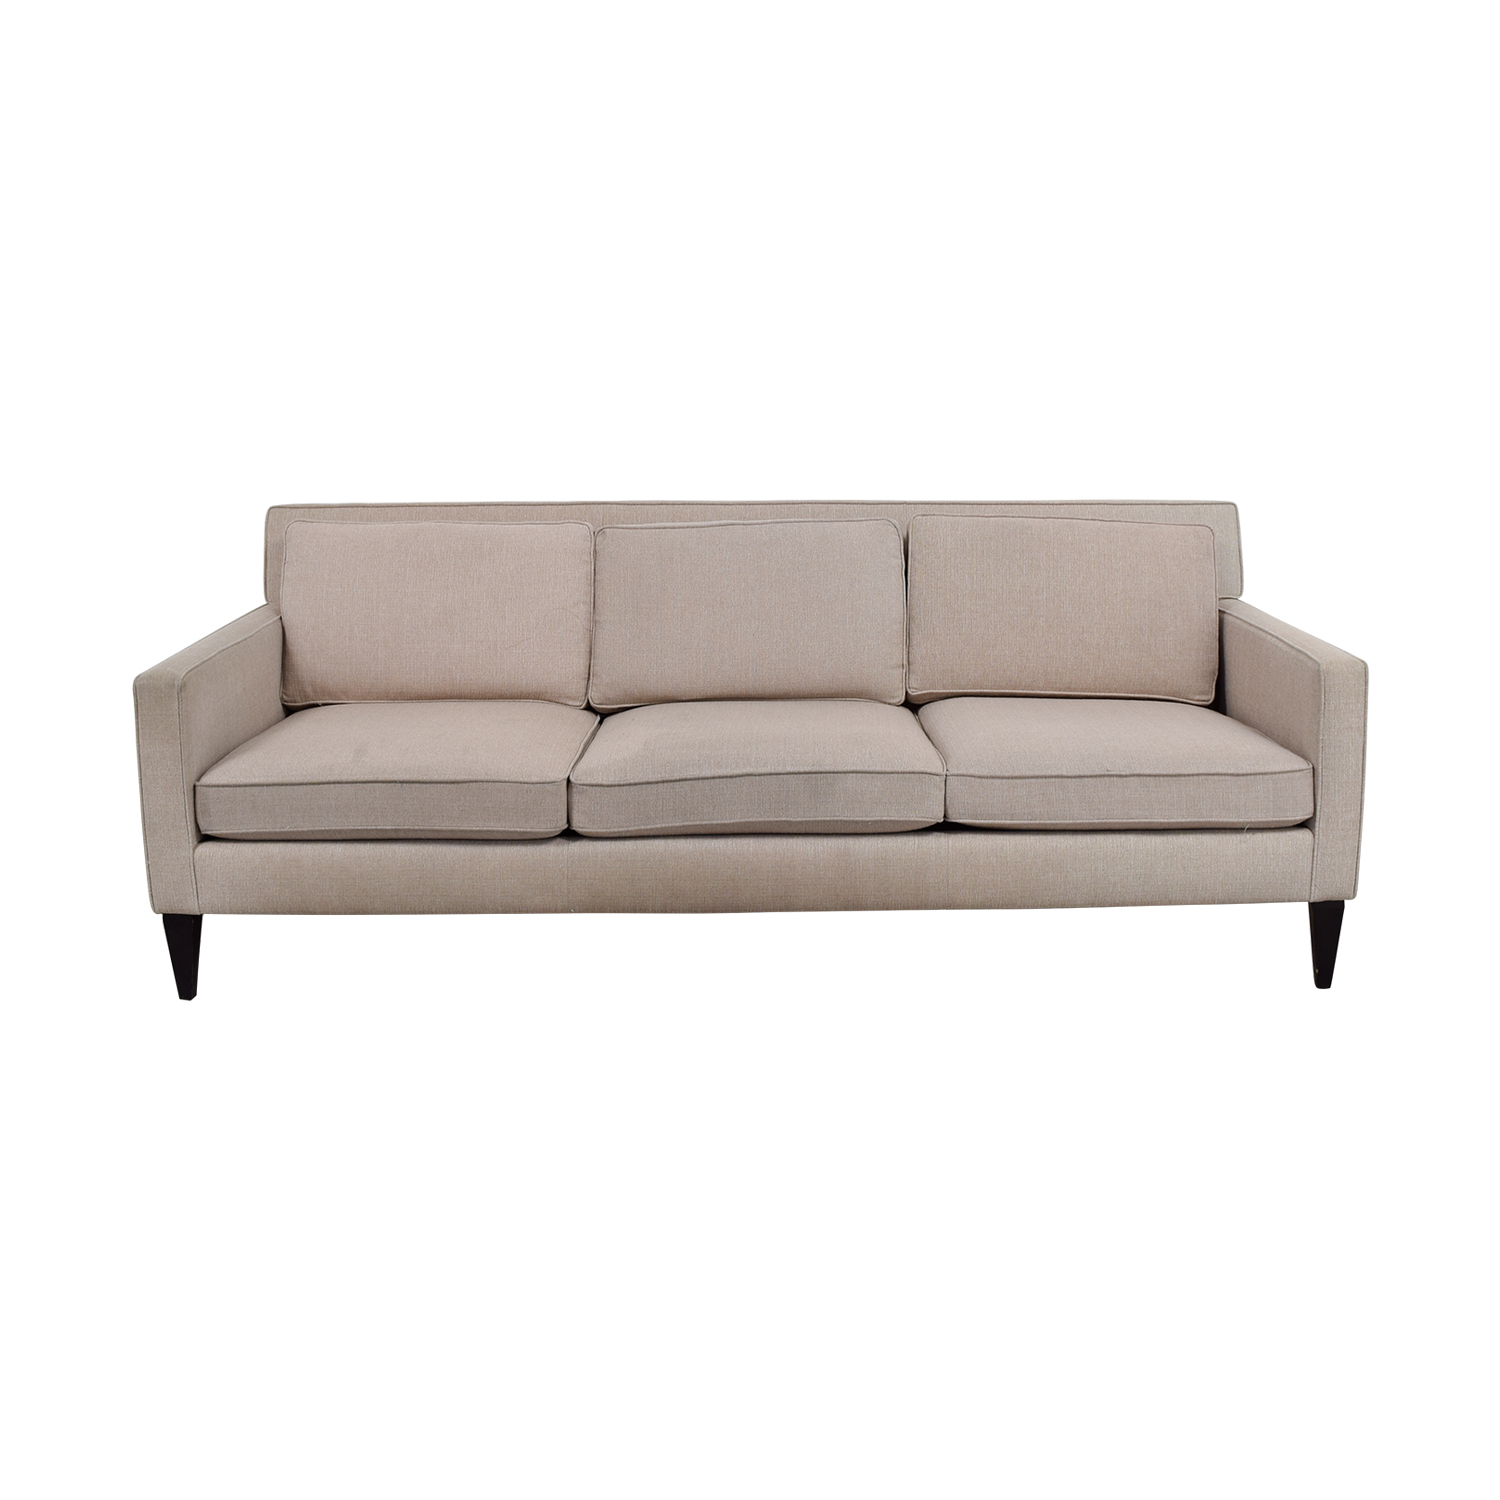 Crate & Barrel Crate & Barrel Rochelle Beige Three-Cushion Sofa beige